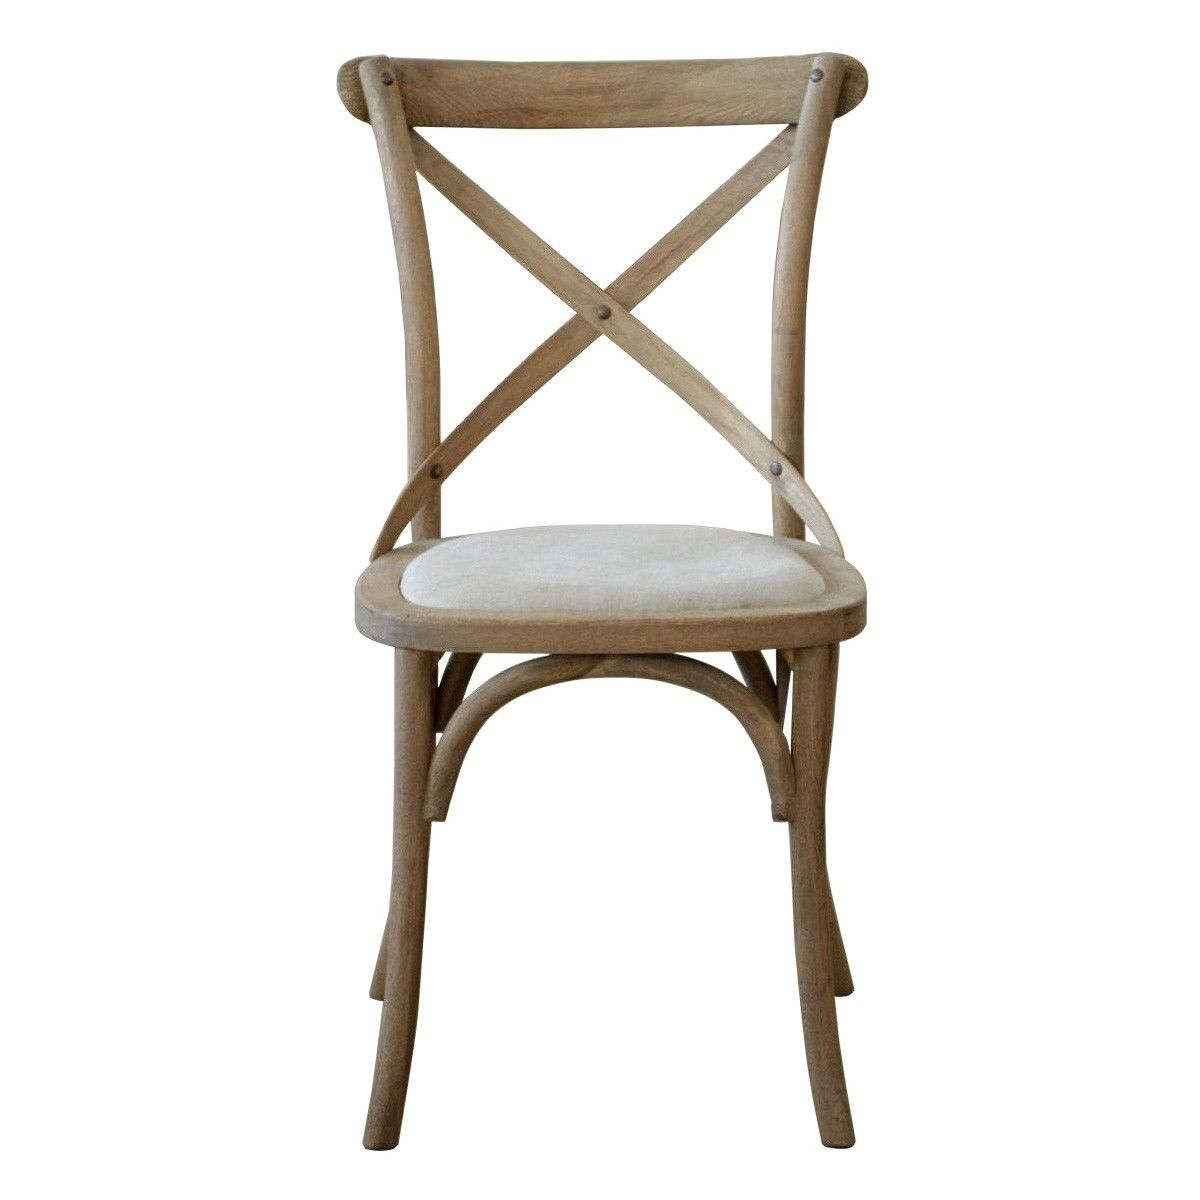 Kasan Oak Timber Cross Back Dining Chair with Linen Seat, Weathered Oak